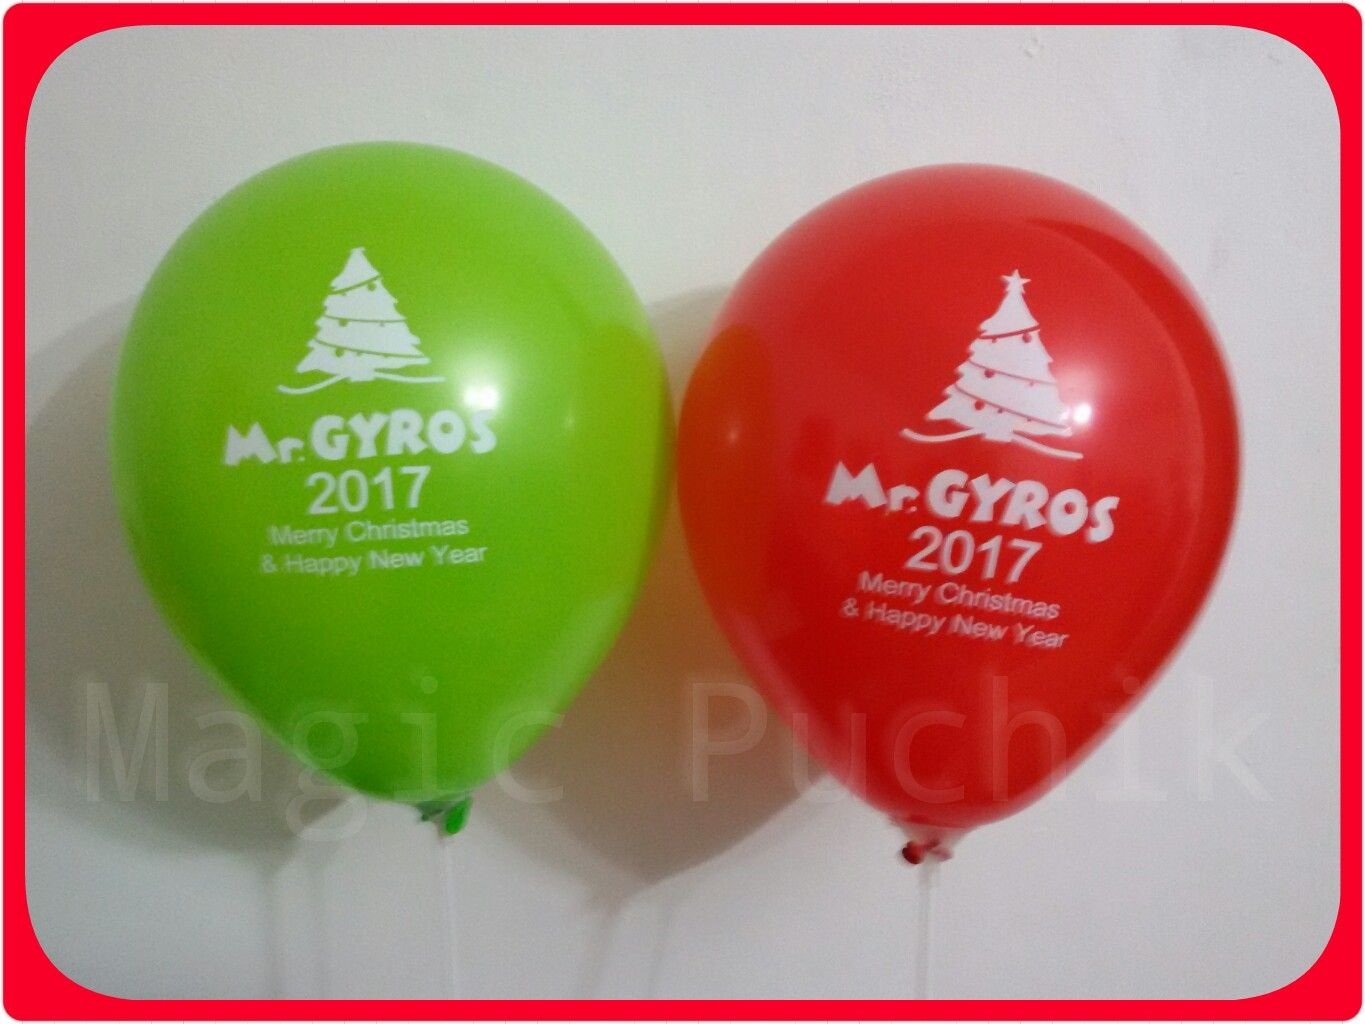 Merry Christmas & Happy New Year from Mr.GYROS